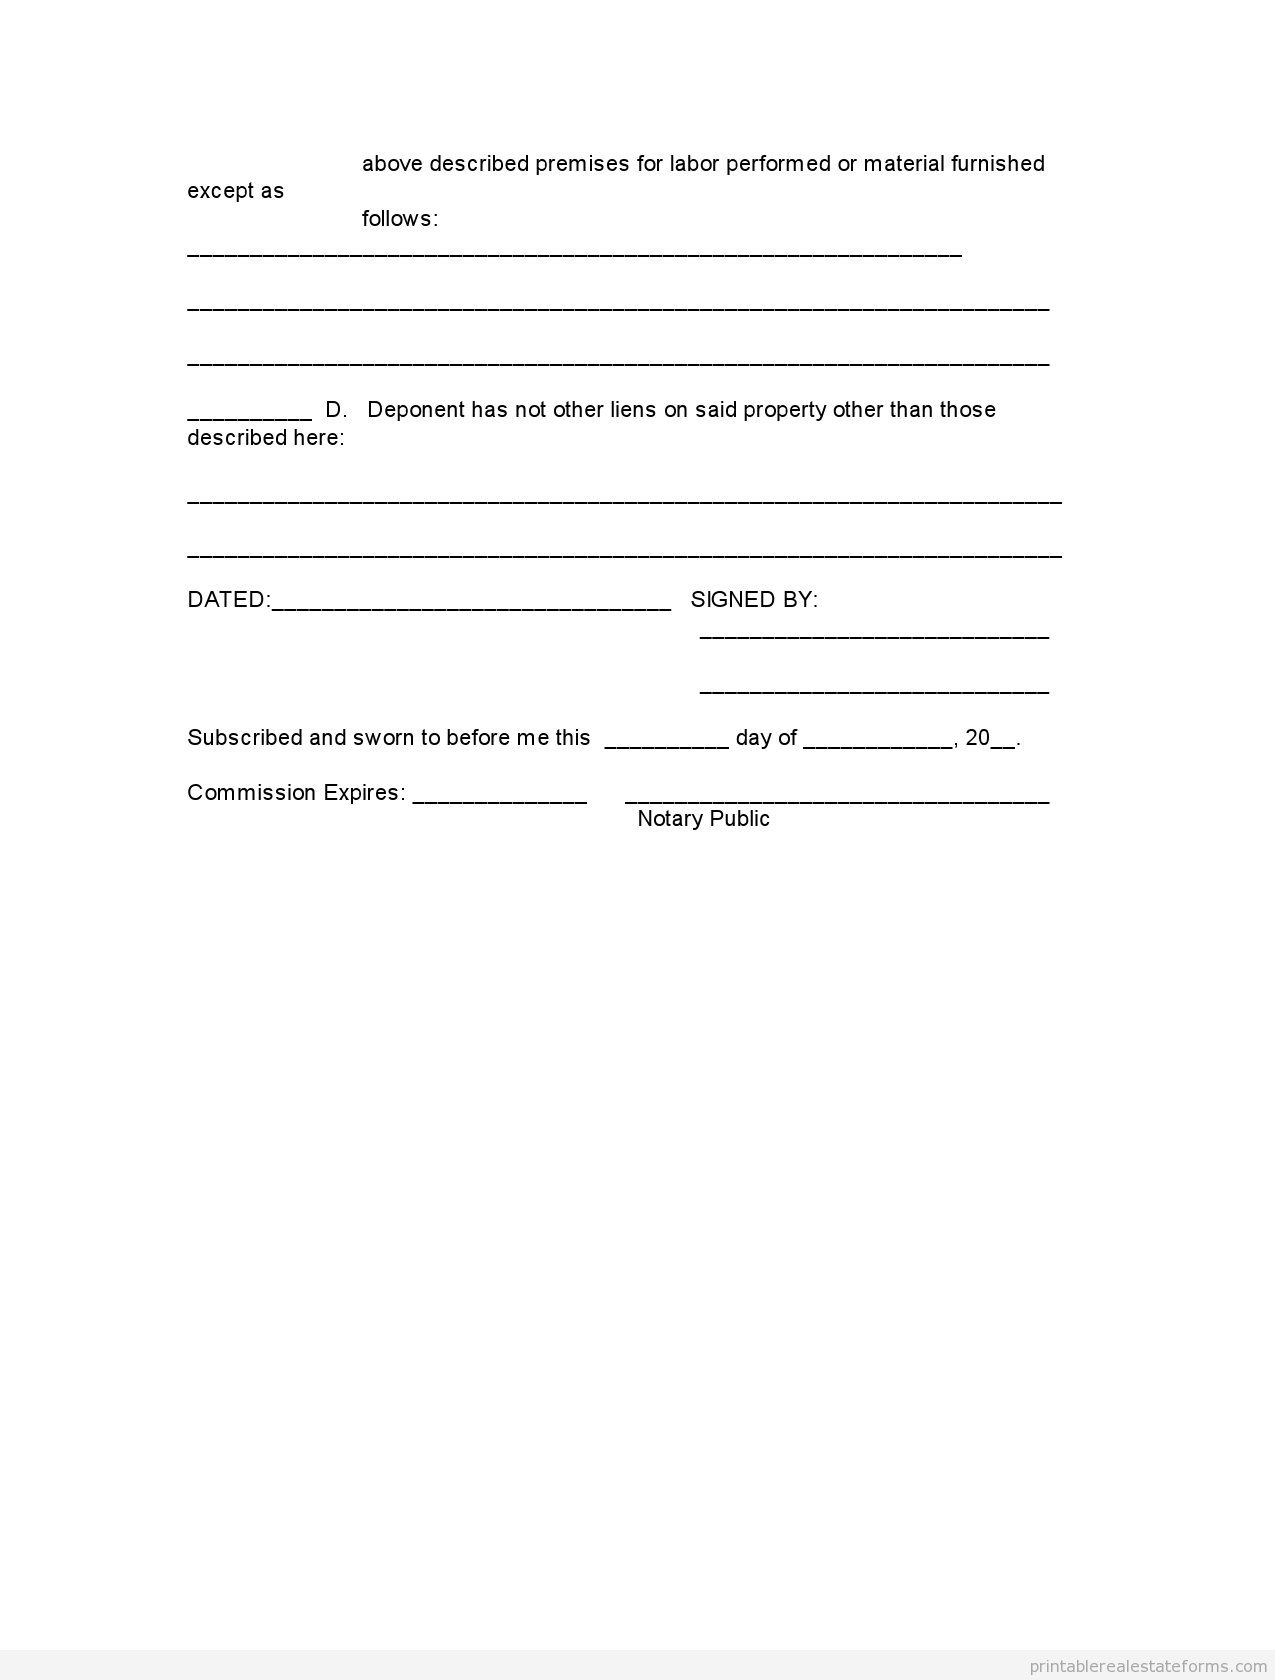 Printable affidavit of ownership 2 template 2015 – Word Affidavit Template